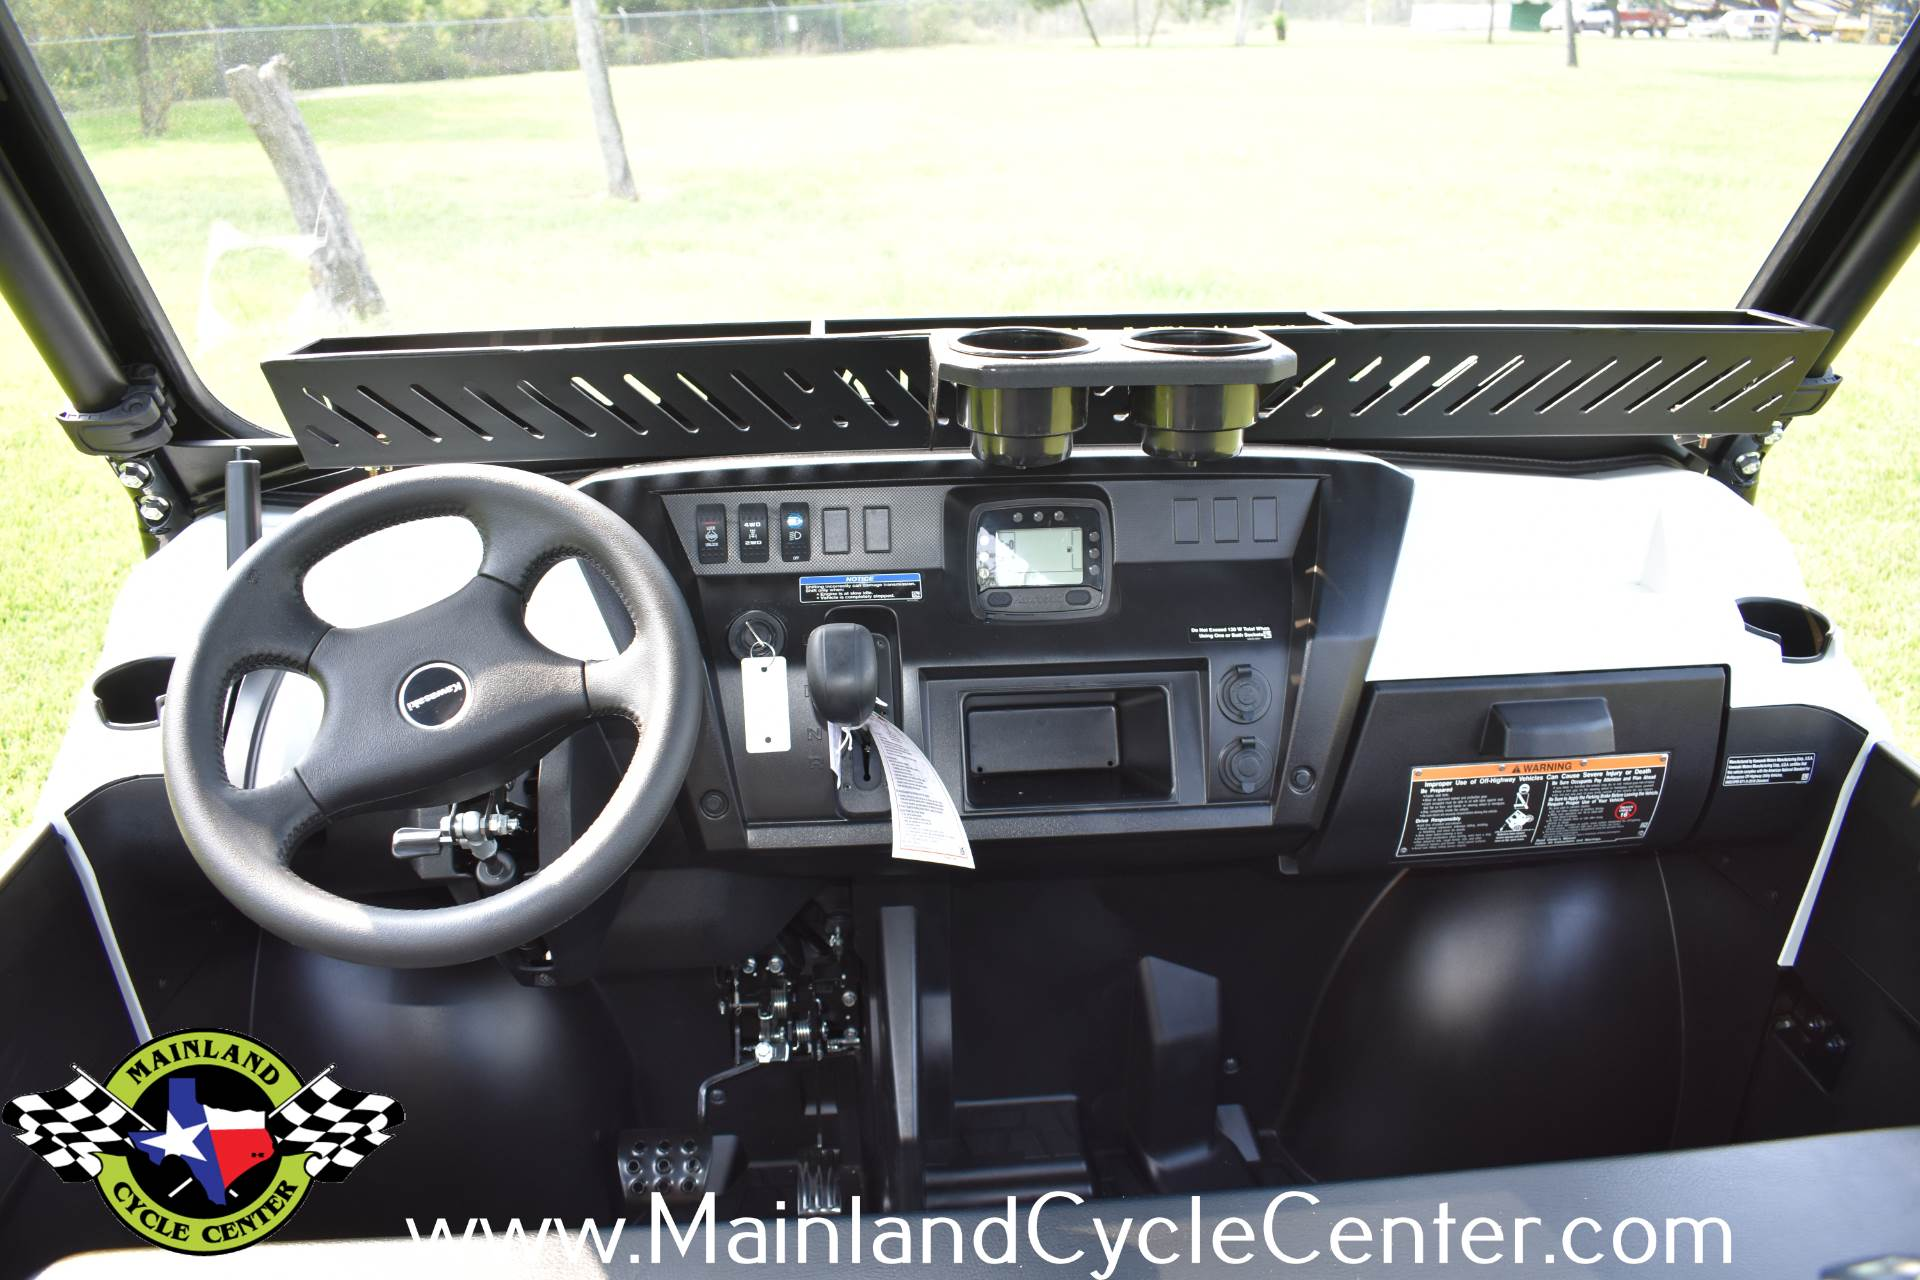 2019 Kawasaki Mule PRO-FXT EPS in La Marque, Texas - Photo 24